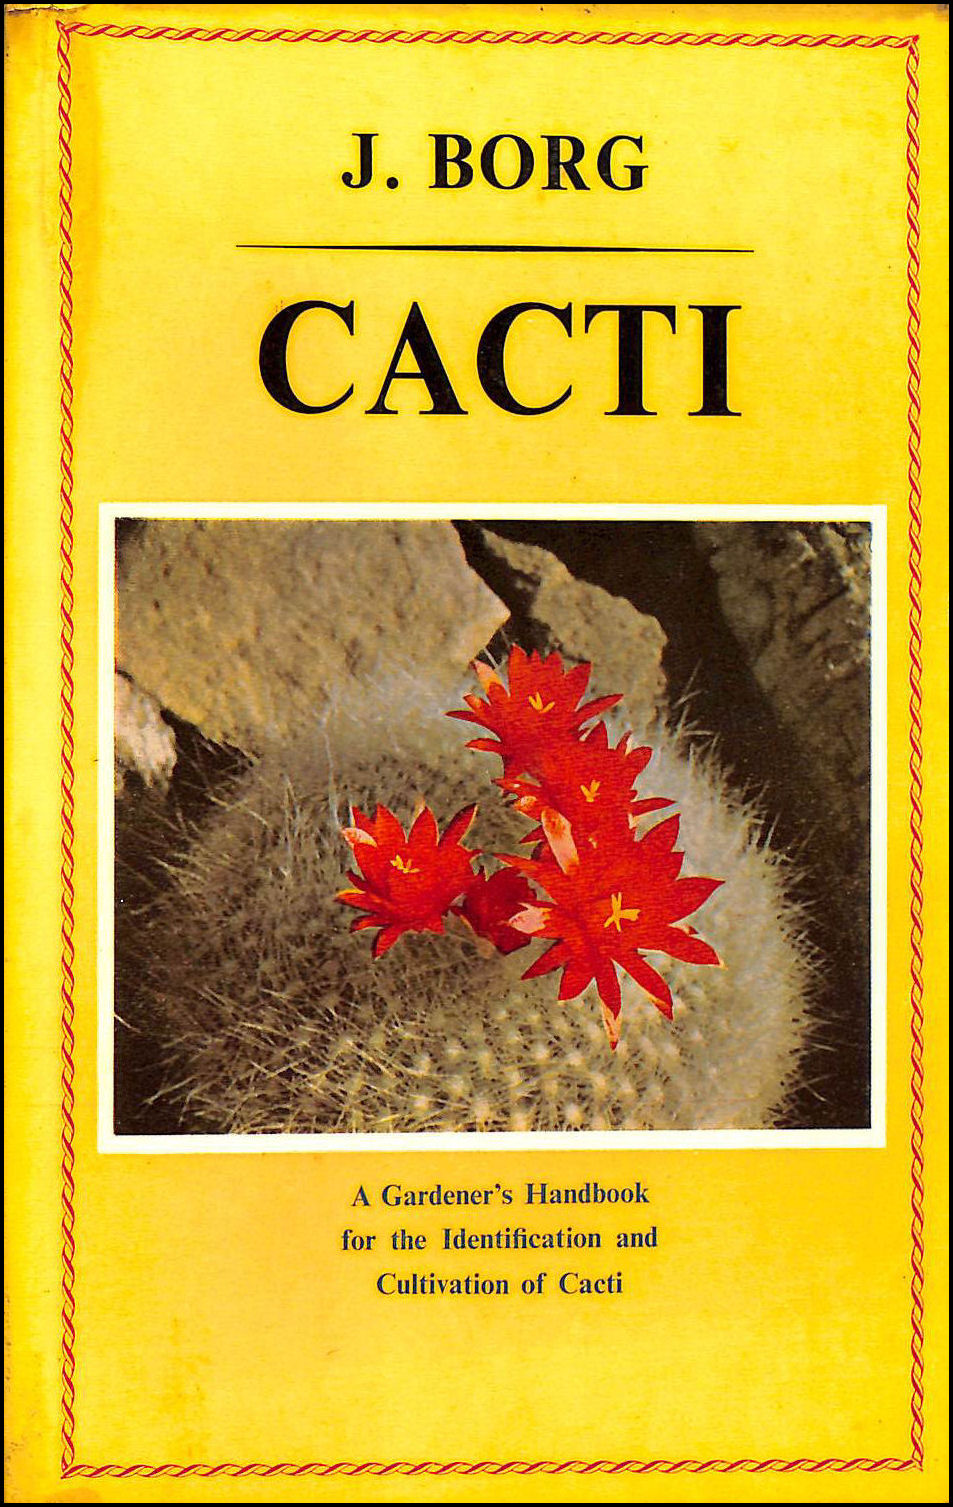 CACTI . A Gardener's Handbook for the Identification of Cacti., J. Borg and Beatrice Borg